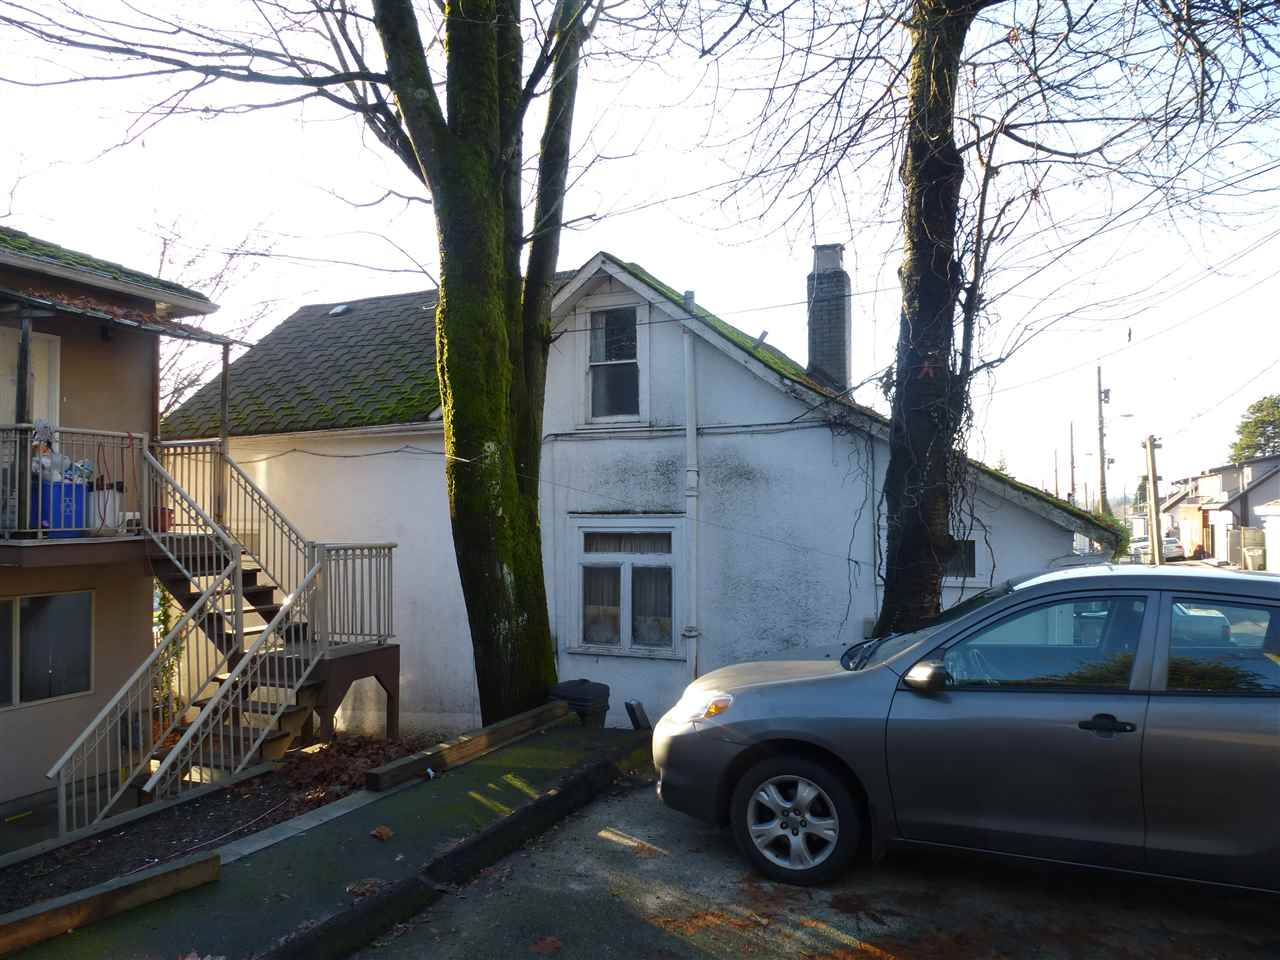 INVESTOR ALERT!. Listed well below assessment. This 3 bdrms 2 bath 1 1/2 story w/bsmt home is located close to YVR, schools and public transit. With updating, would be nice home in popular sought-after central area. Owner Occupied. Needs Updating - Value is in the Land only. Could this be your opportunity to live in Vancouver?